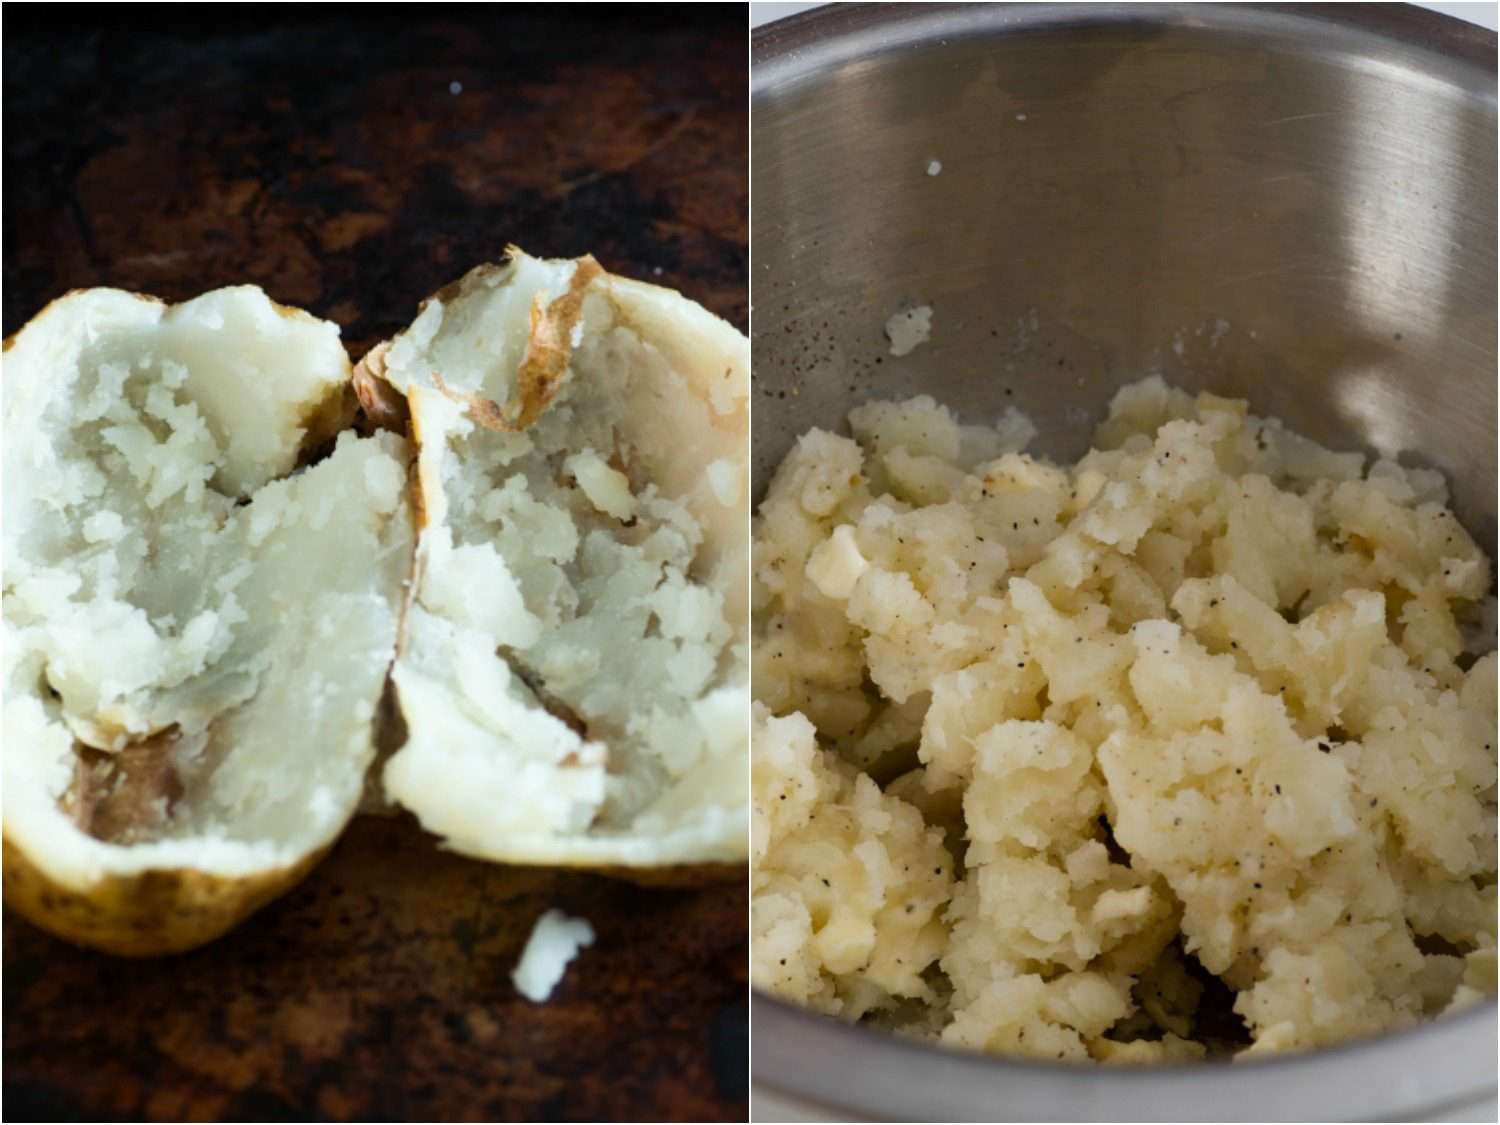 Split image showing halved baked potato and metal bowl with mashed potato in it.